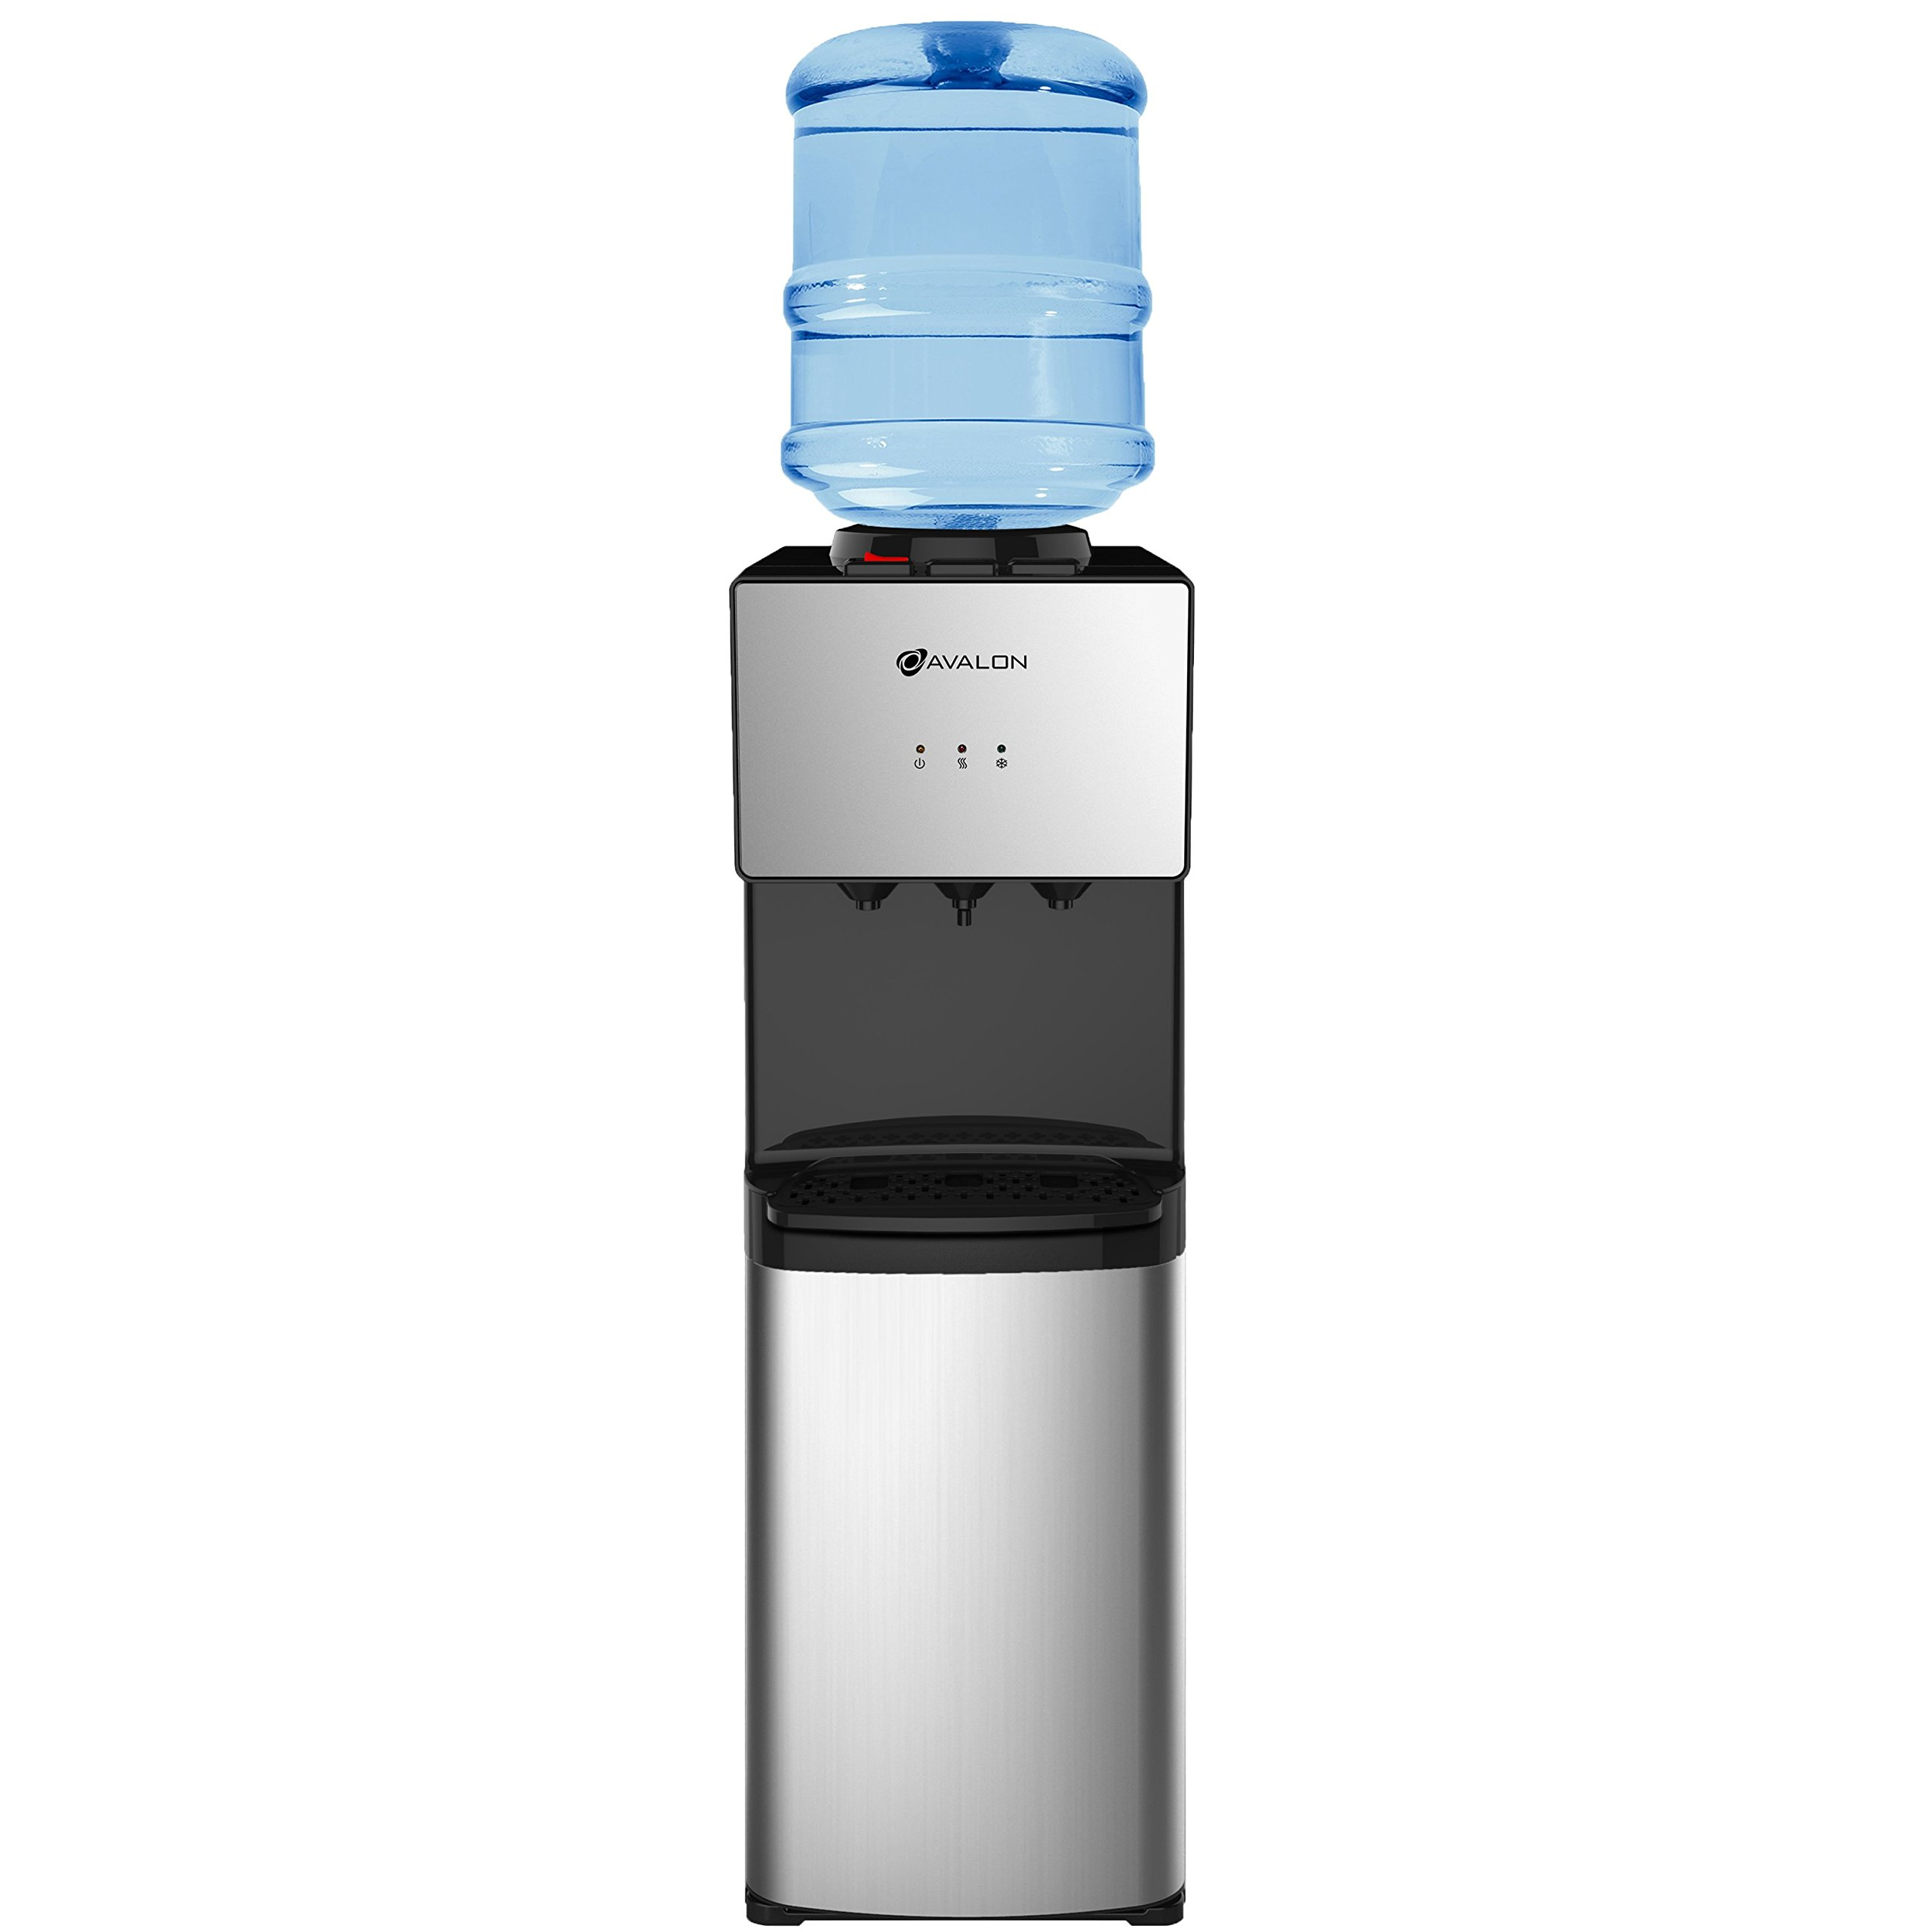 Avalon Top Loading Water Cooler Dispenser - 3 Temperature, Stainless Steel by Avalon (Image #2)